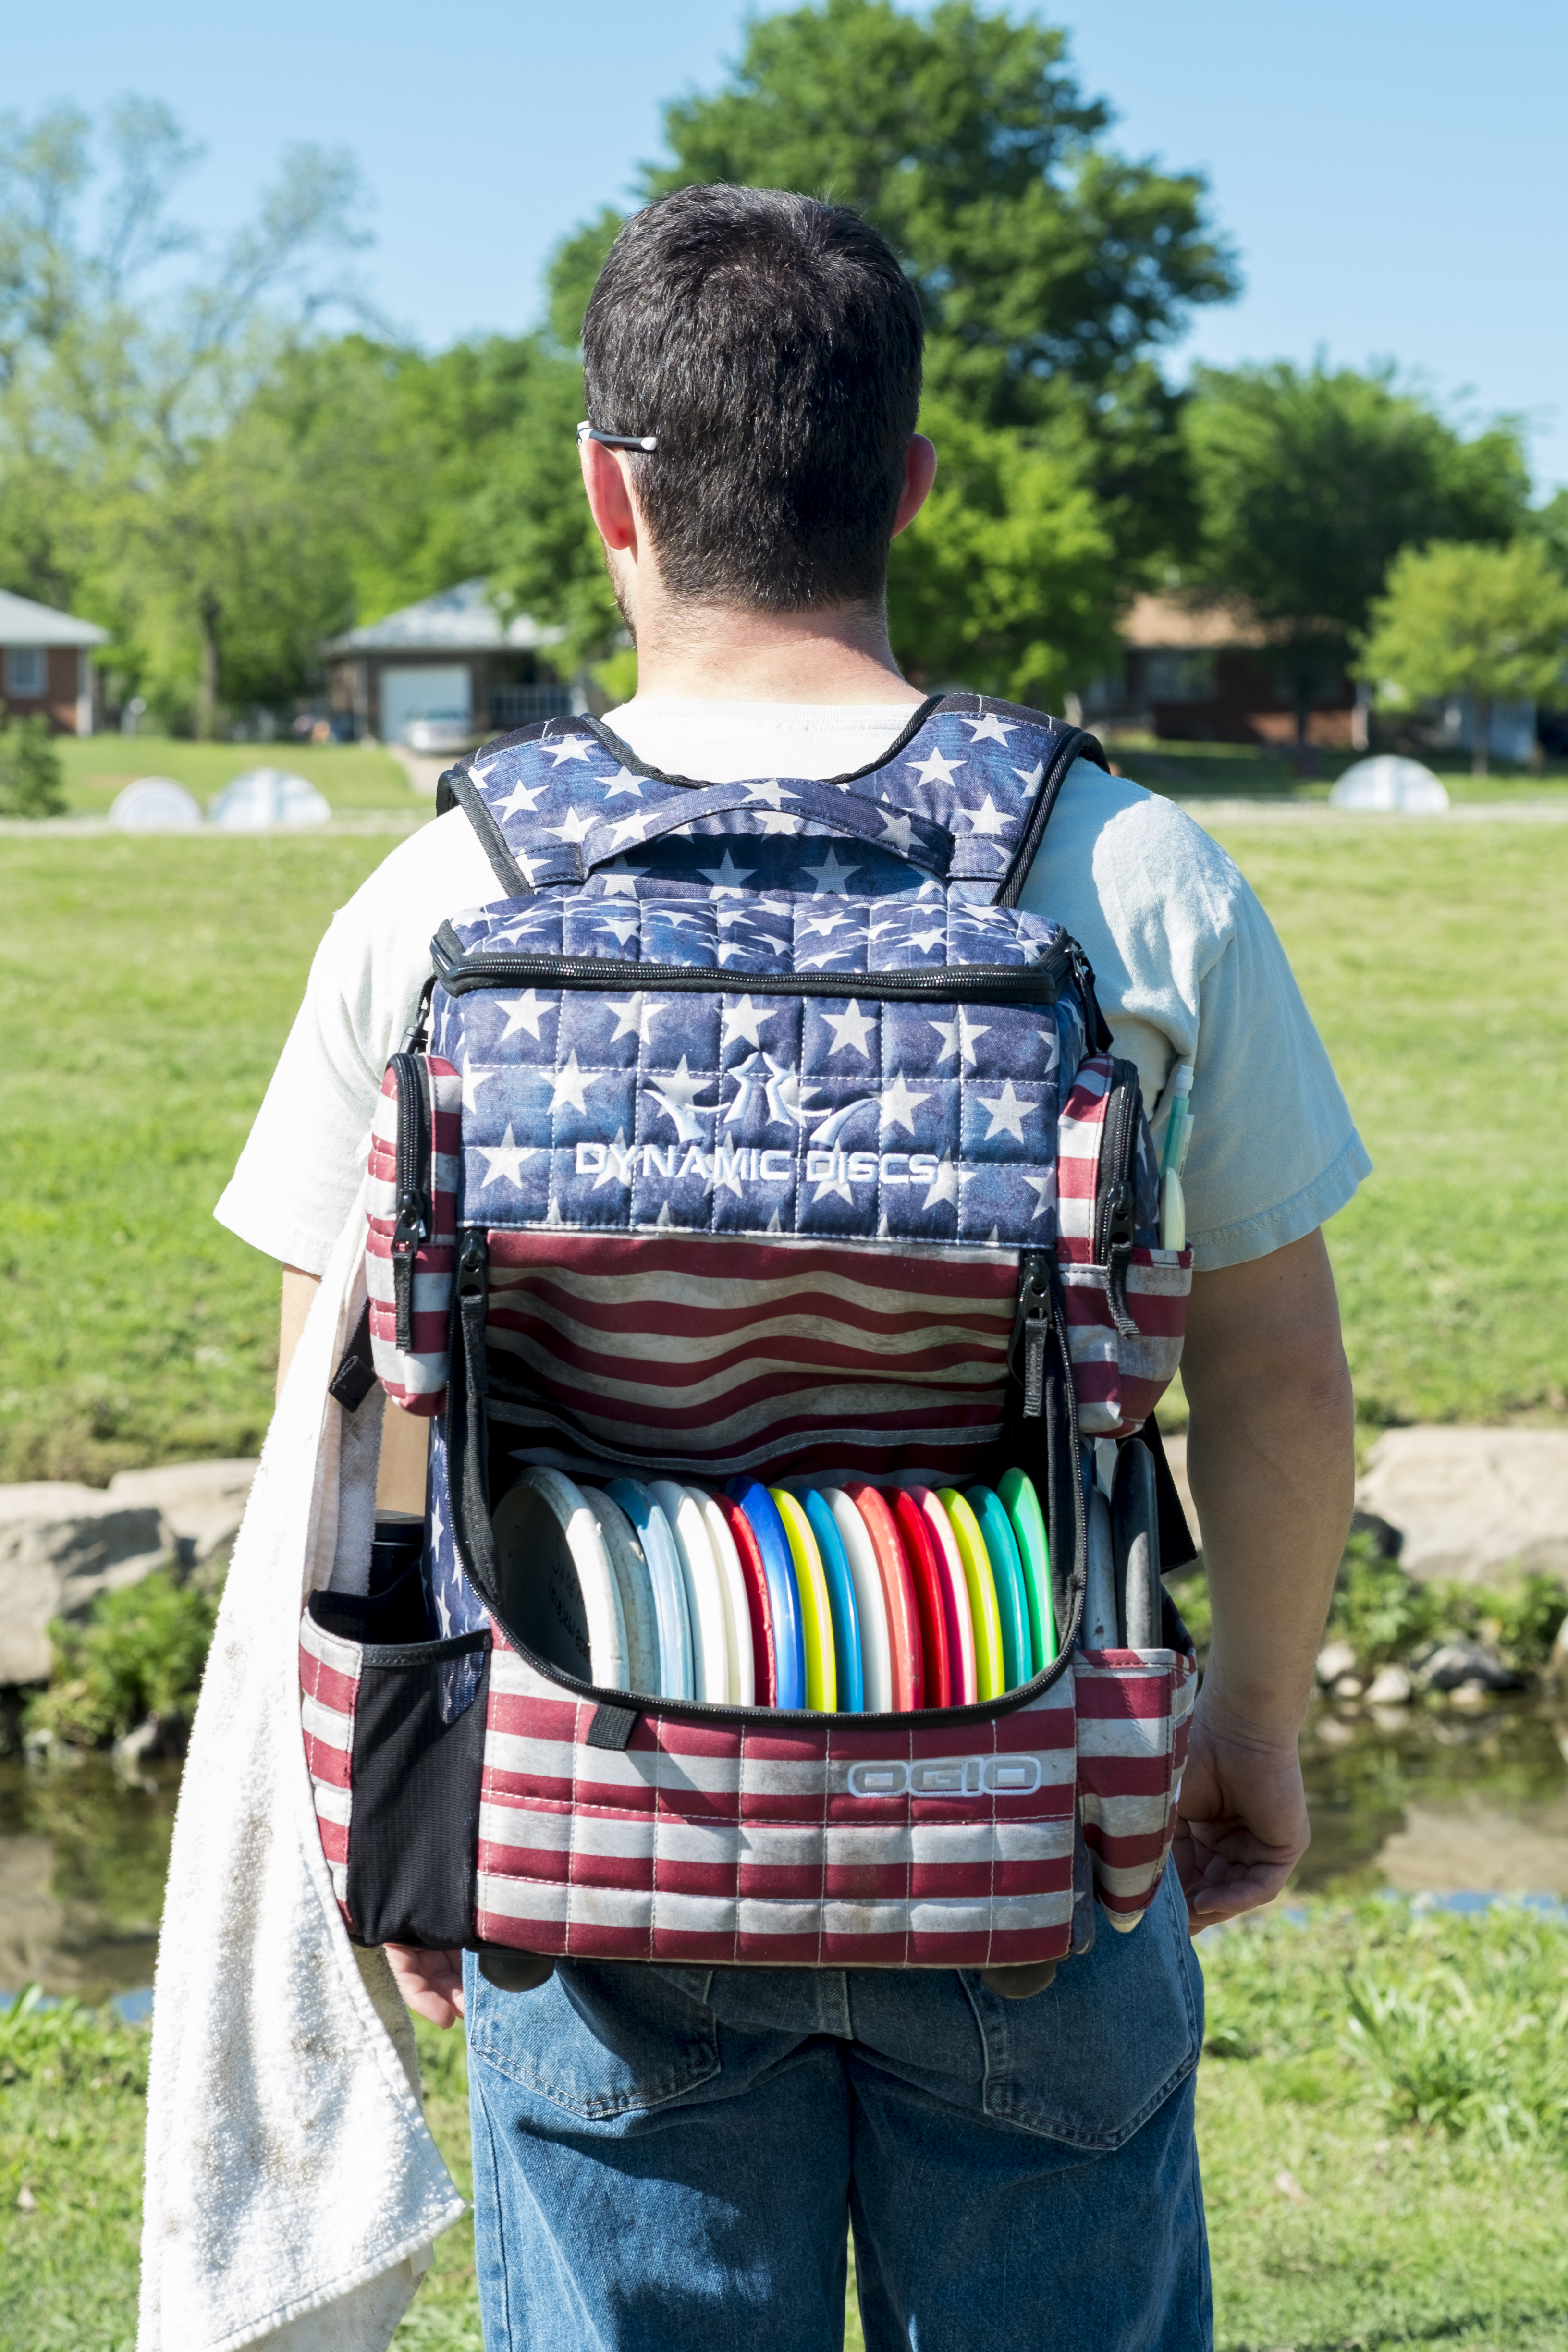 Disc golfer with backpack